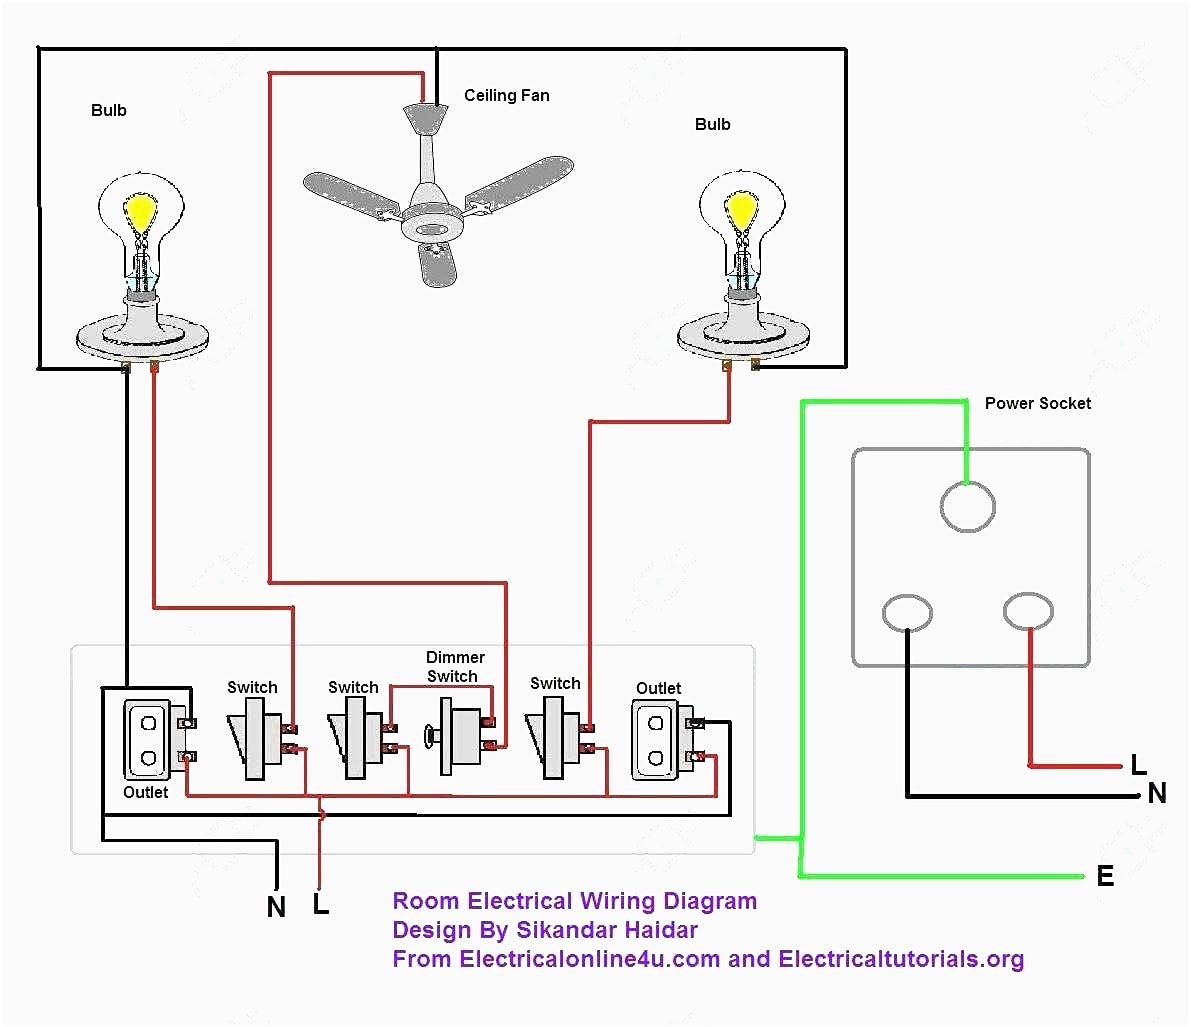 Electrical Wiring Diagram >> Electric House Wiring Diagram Also Residential Electrical